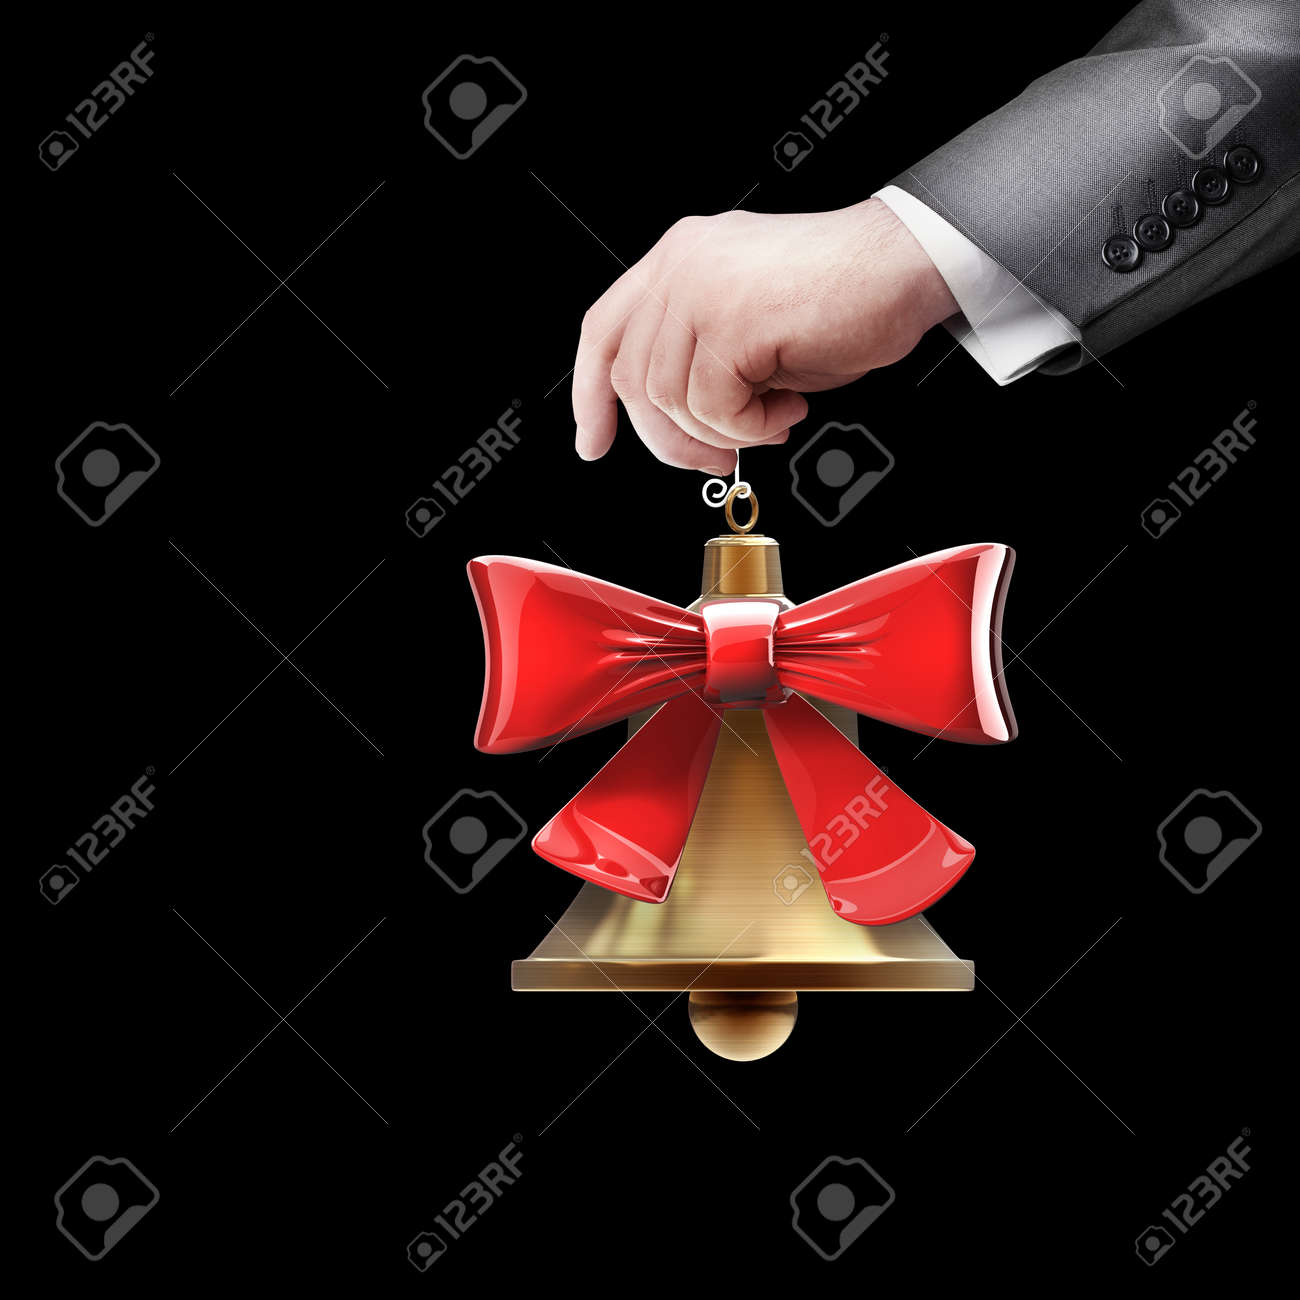 hand holding object (Christmas handbell) isolated on black background